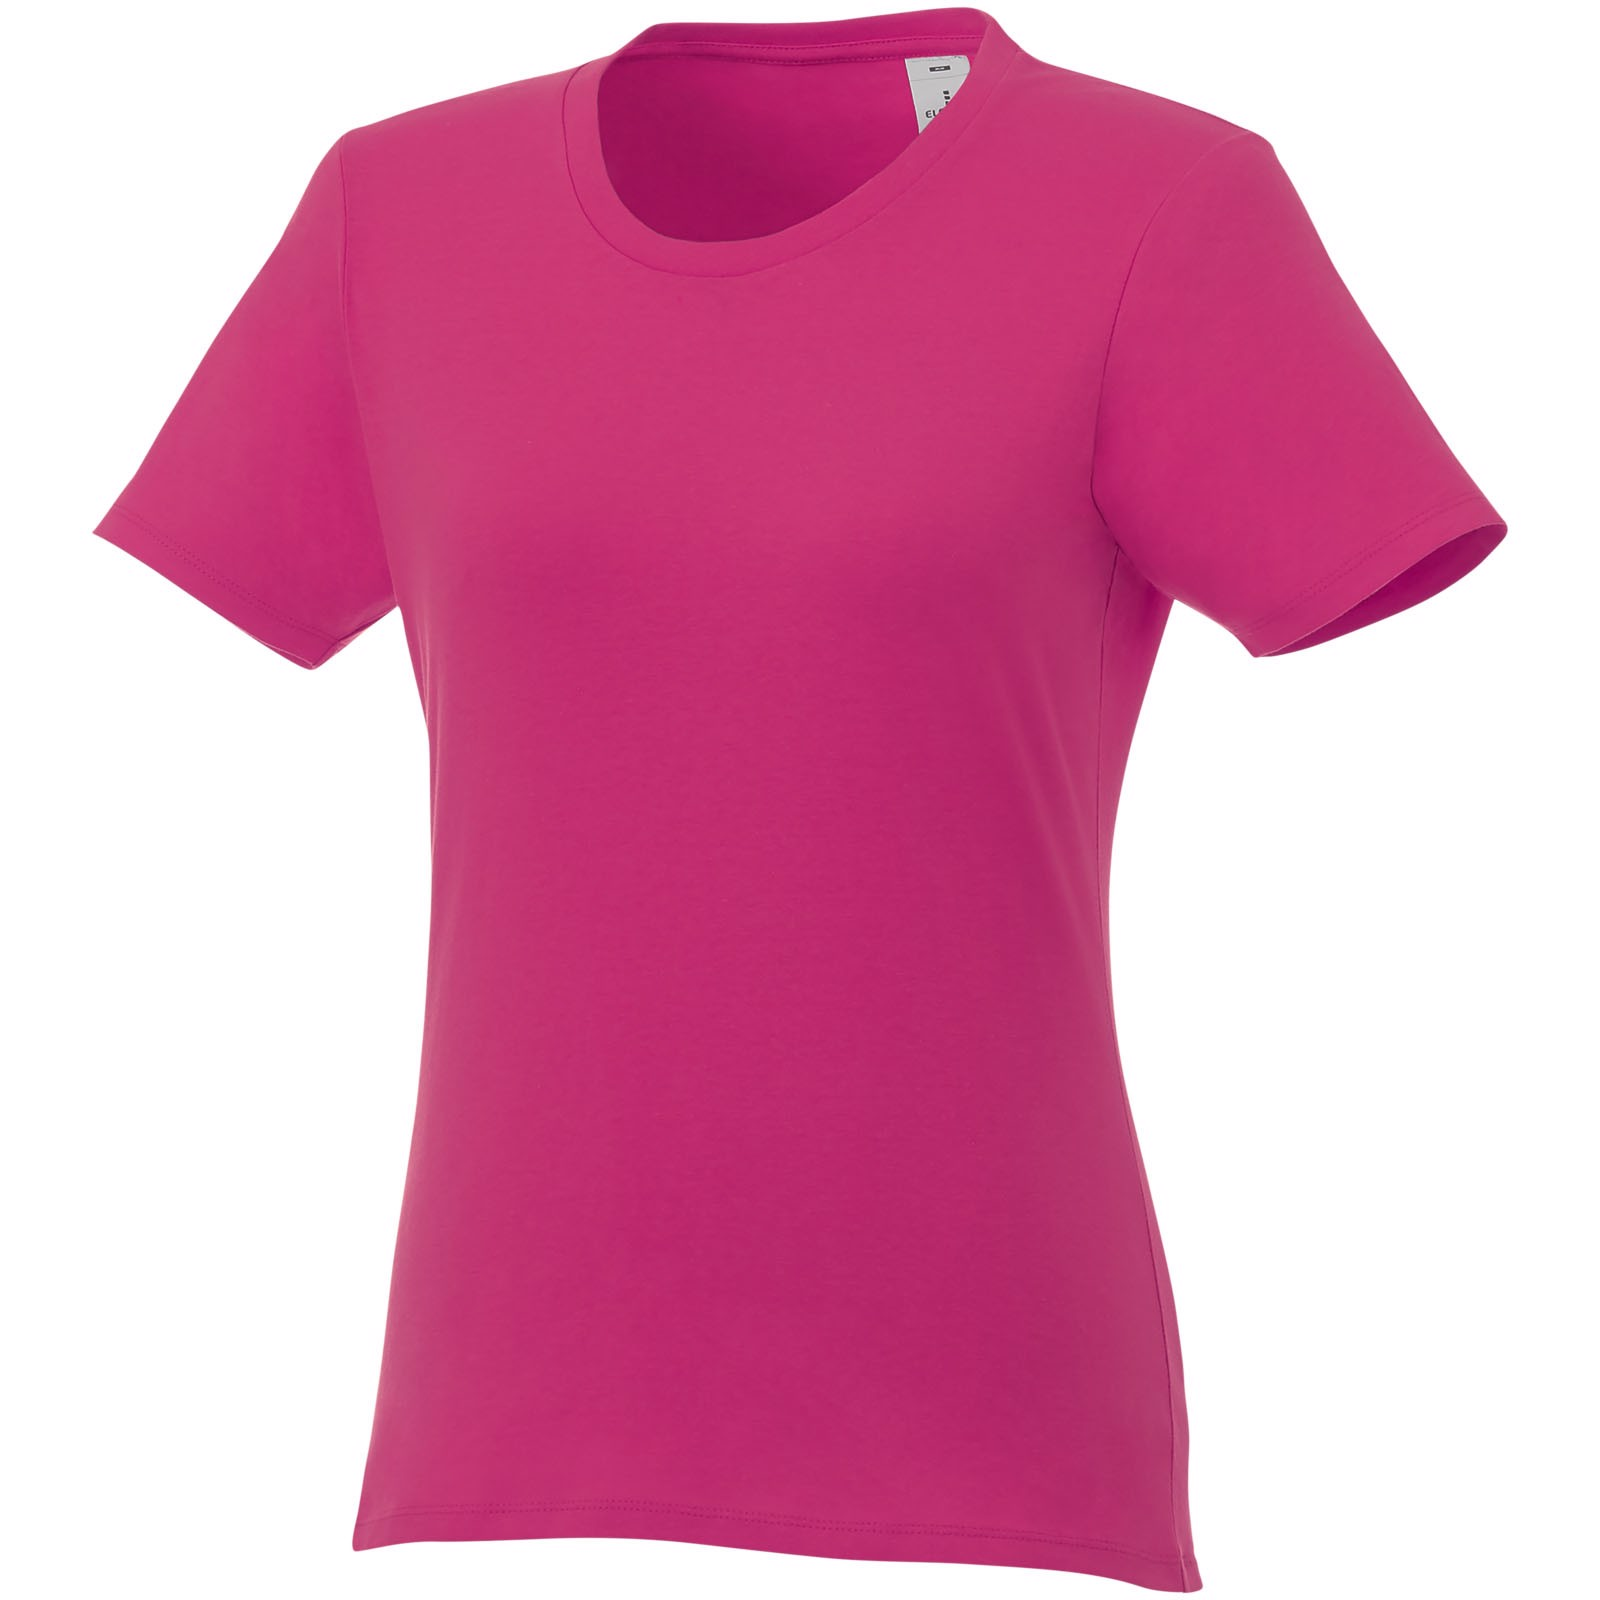 Heros short sleeve women's t-shirt - Magenta / L